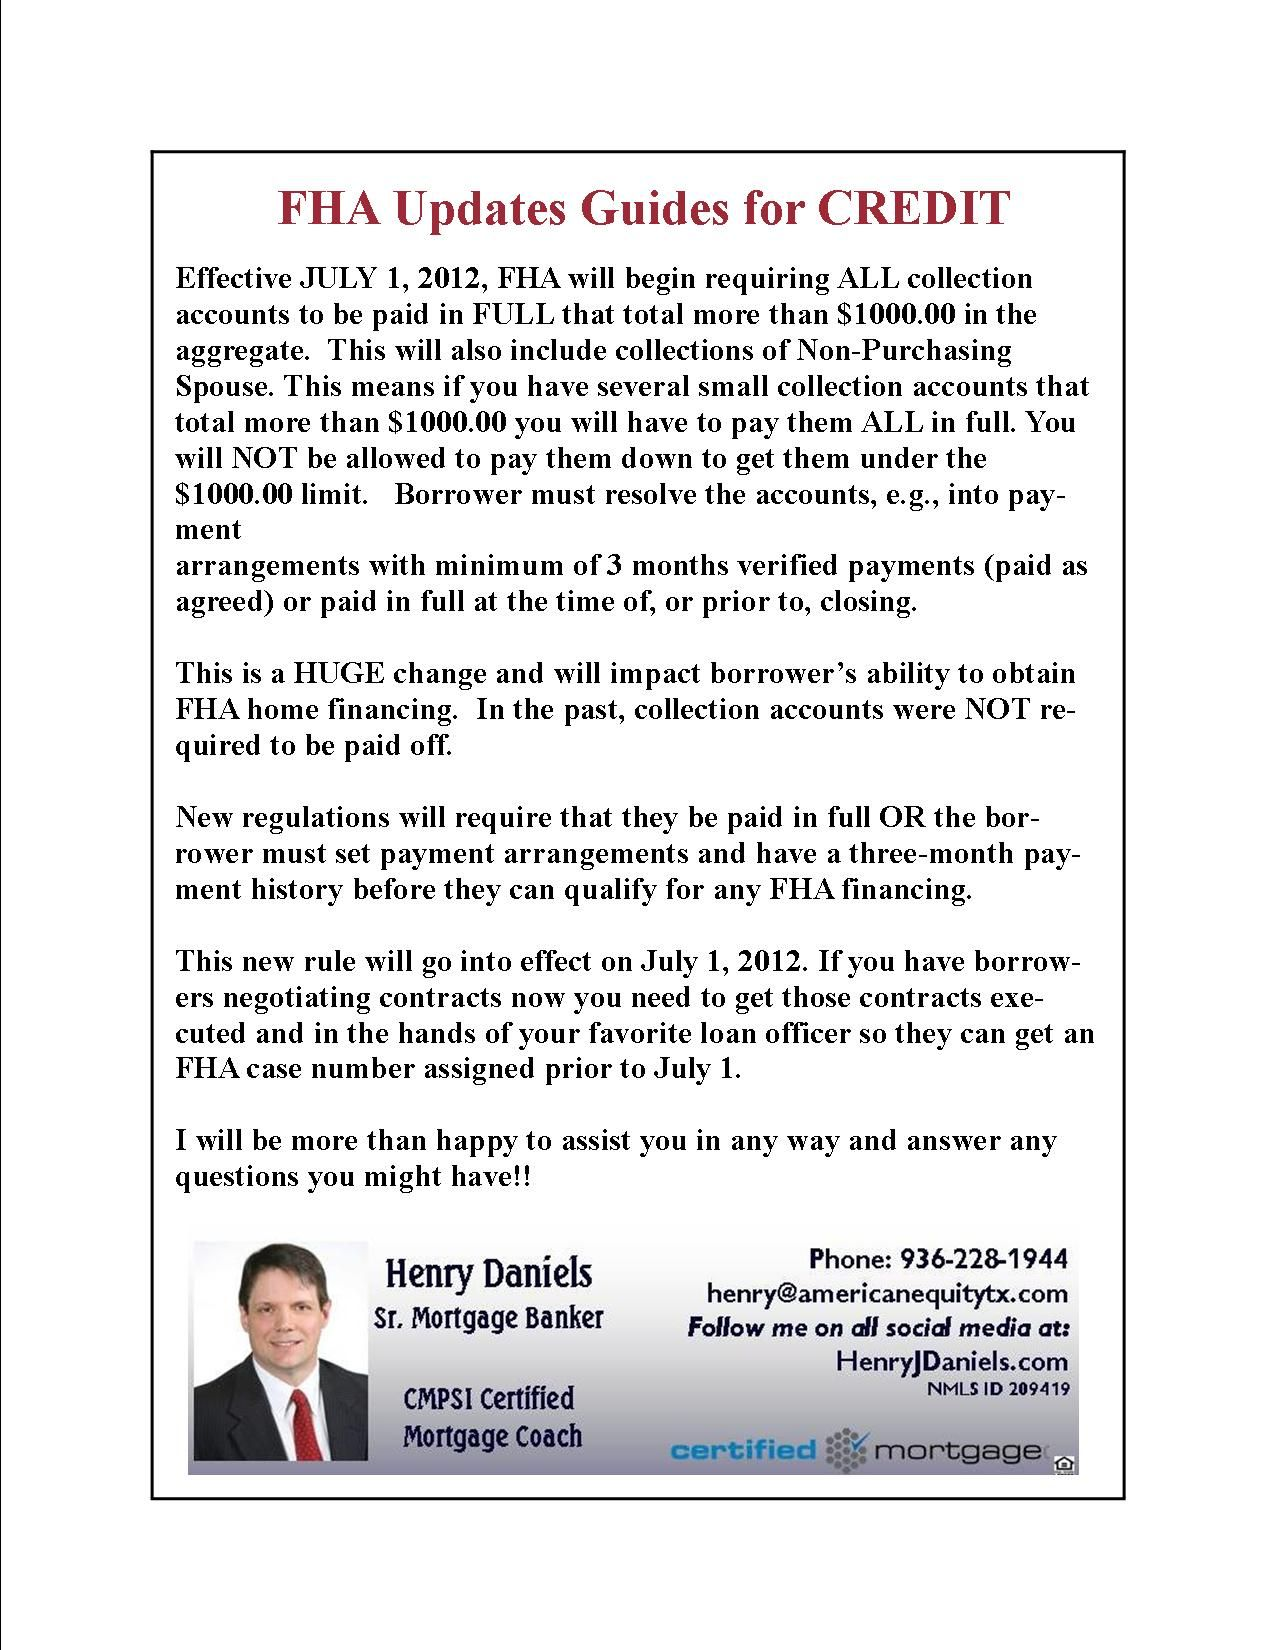 July 1st new rules for credit collections when applying